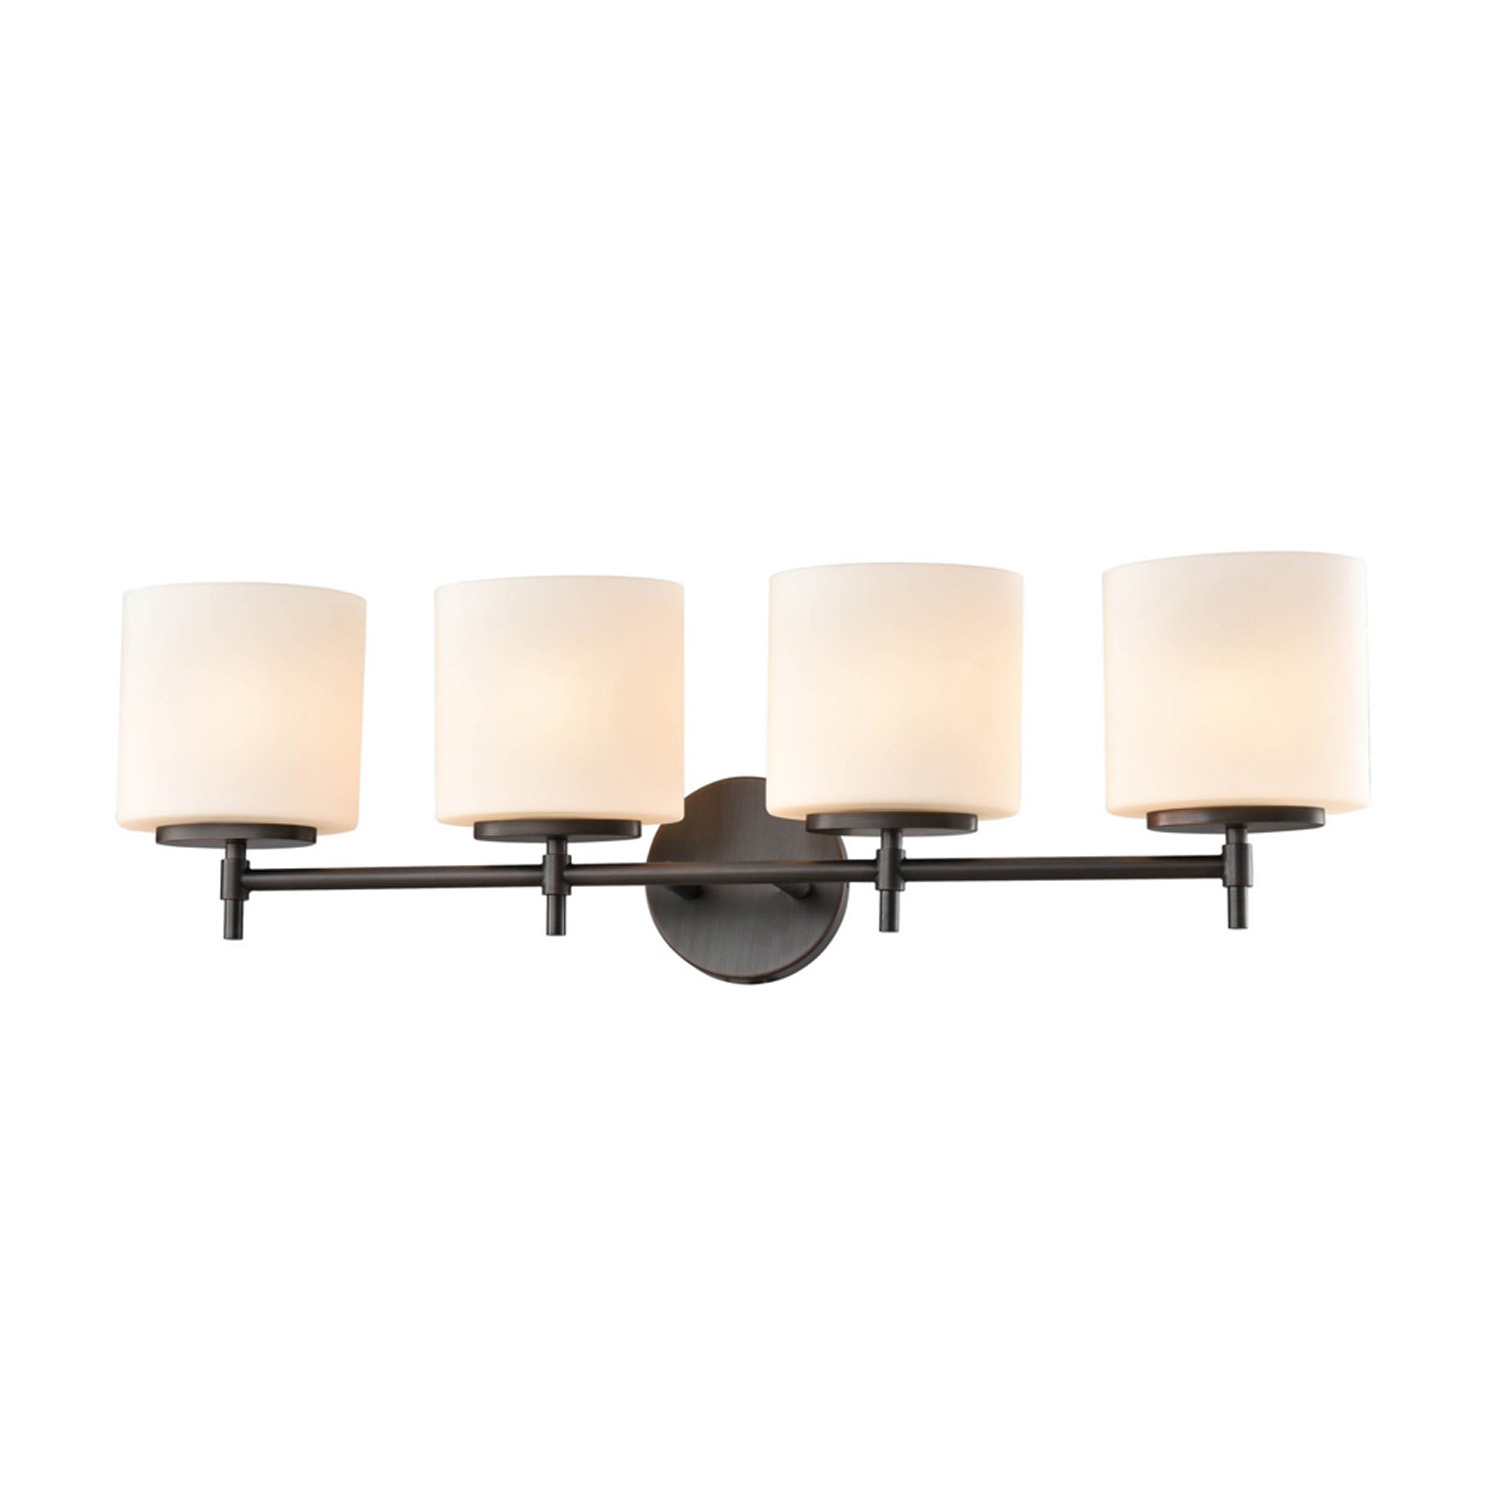 Zara Wall Lamps | FCI Custom Lighting